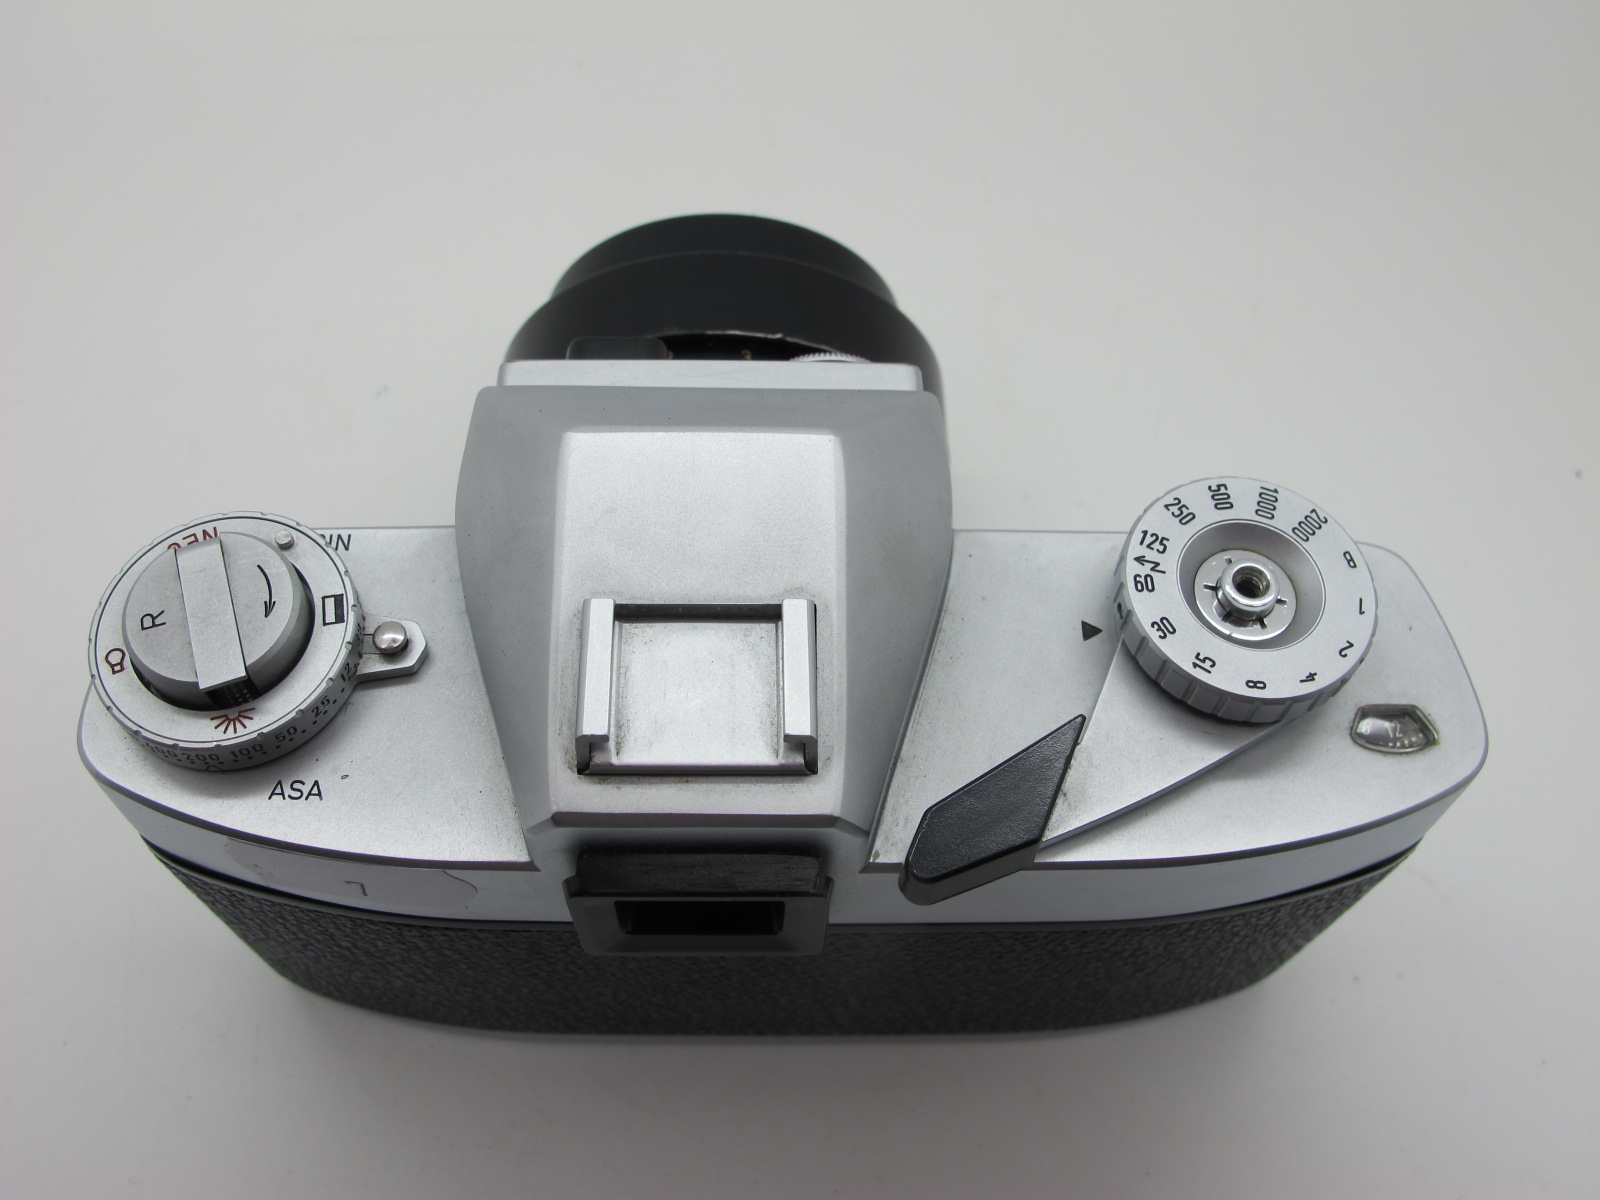 Leicaflex Manual Camera, with Leitz Wetzlar Summicron - R 1:2/50 lens in a black case. - Image 8 of 8